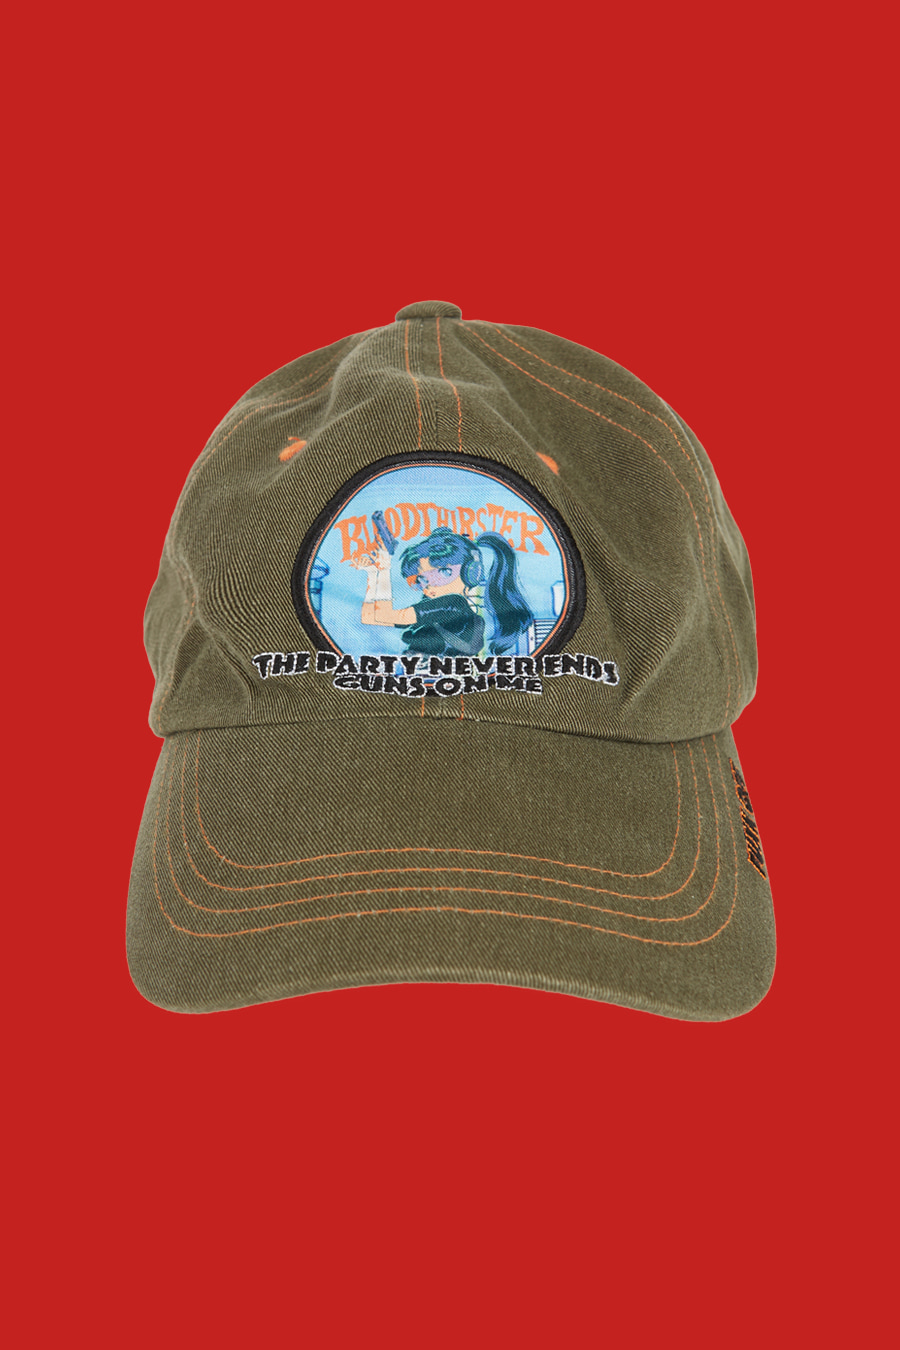 Guns On Me Ball Cap - Loden Green